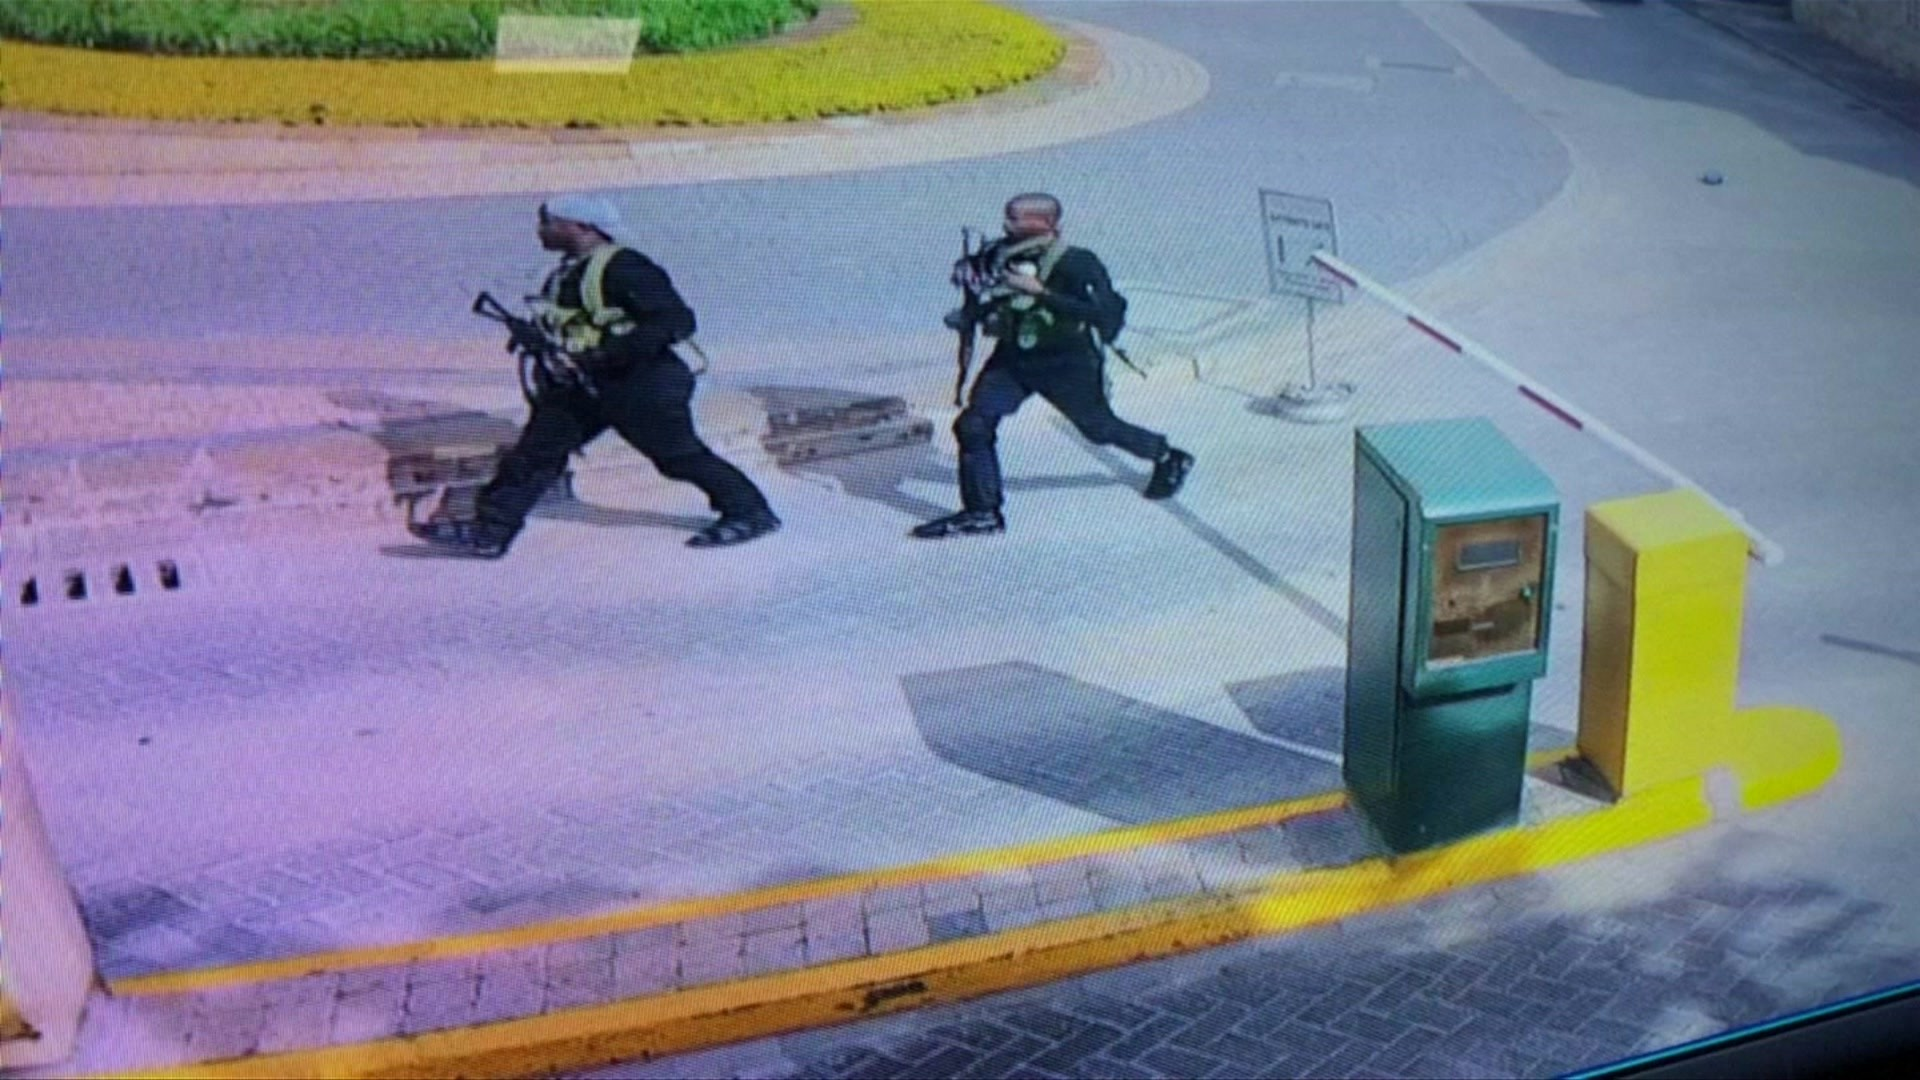 Nairobi hotel: DusitD2 siege over as attackers eliminated